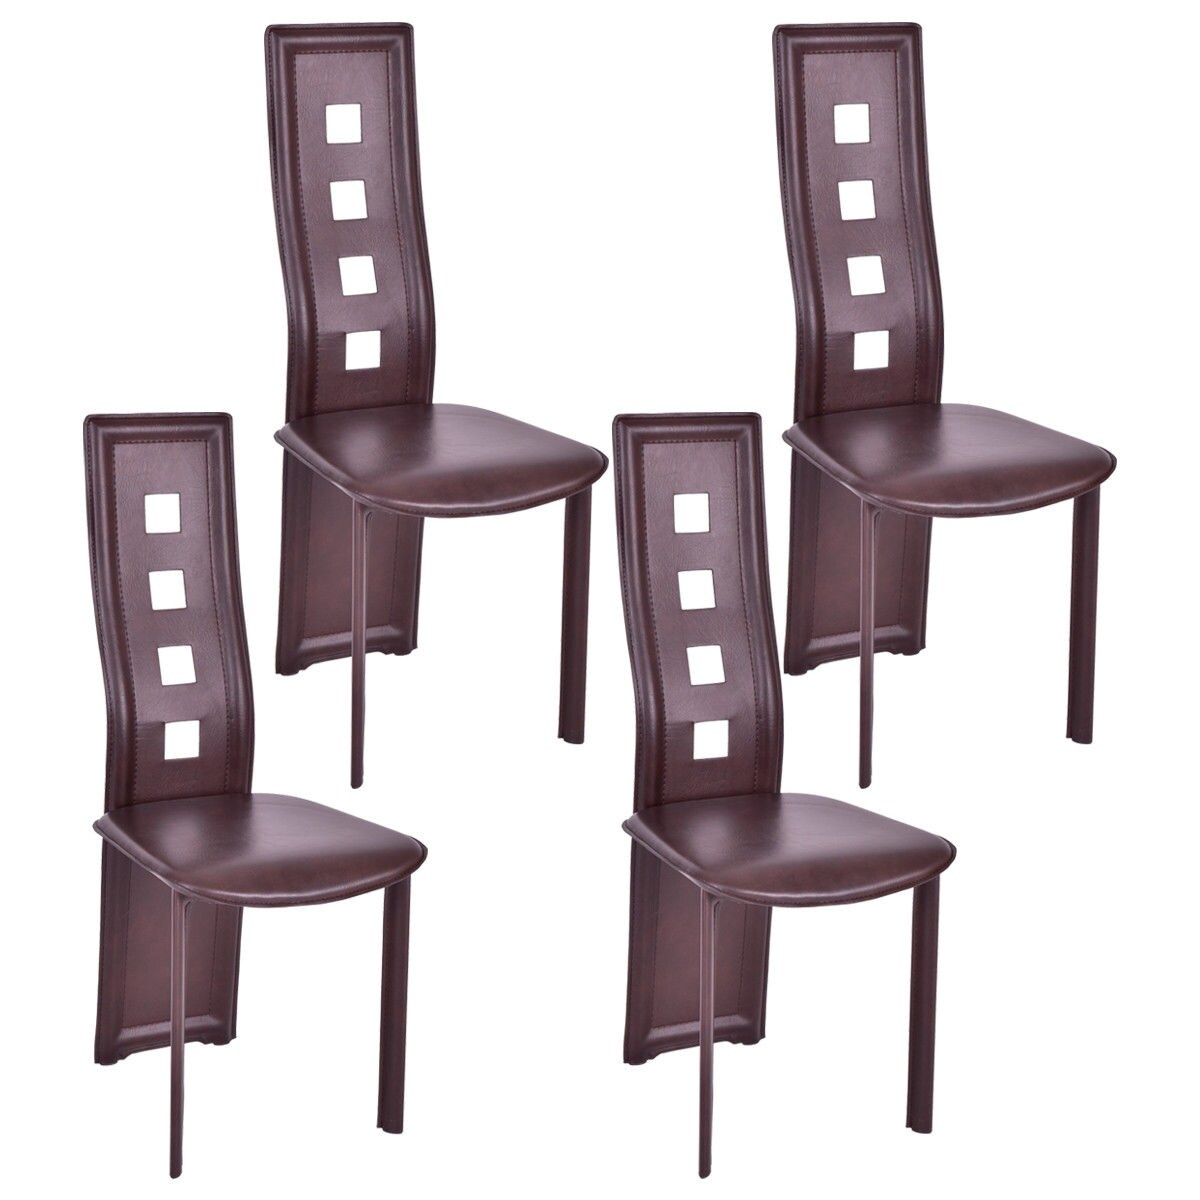 4-Pieces Dining Chair Padded Seat Steel Frame Curved High Backrest ...